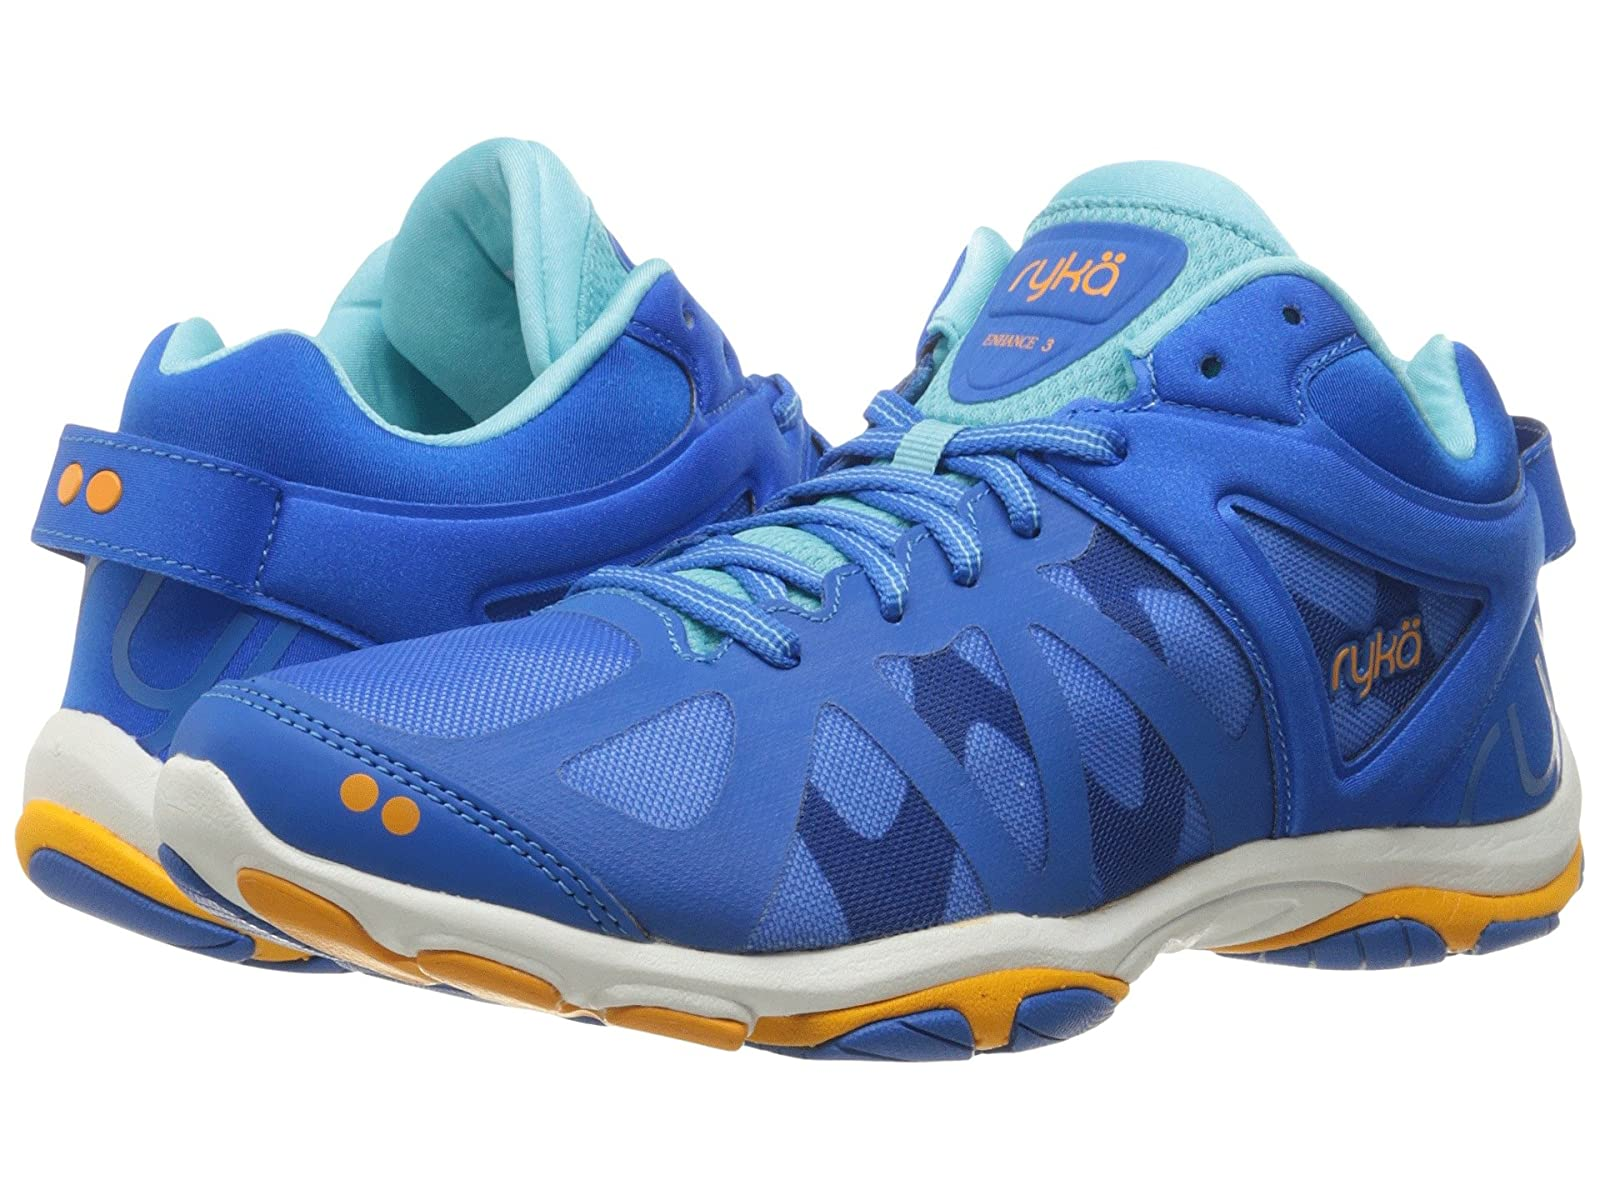 Ryka Enhance 3Cheap and distinctive eye-catching shoes